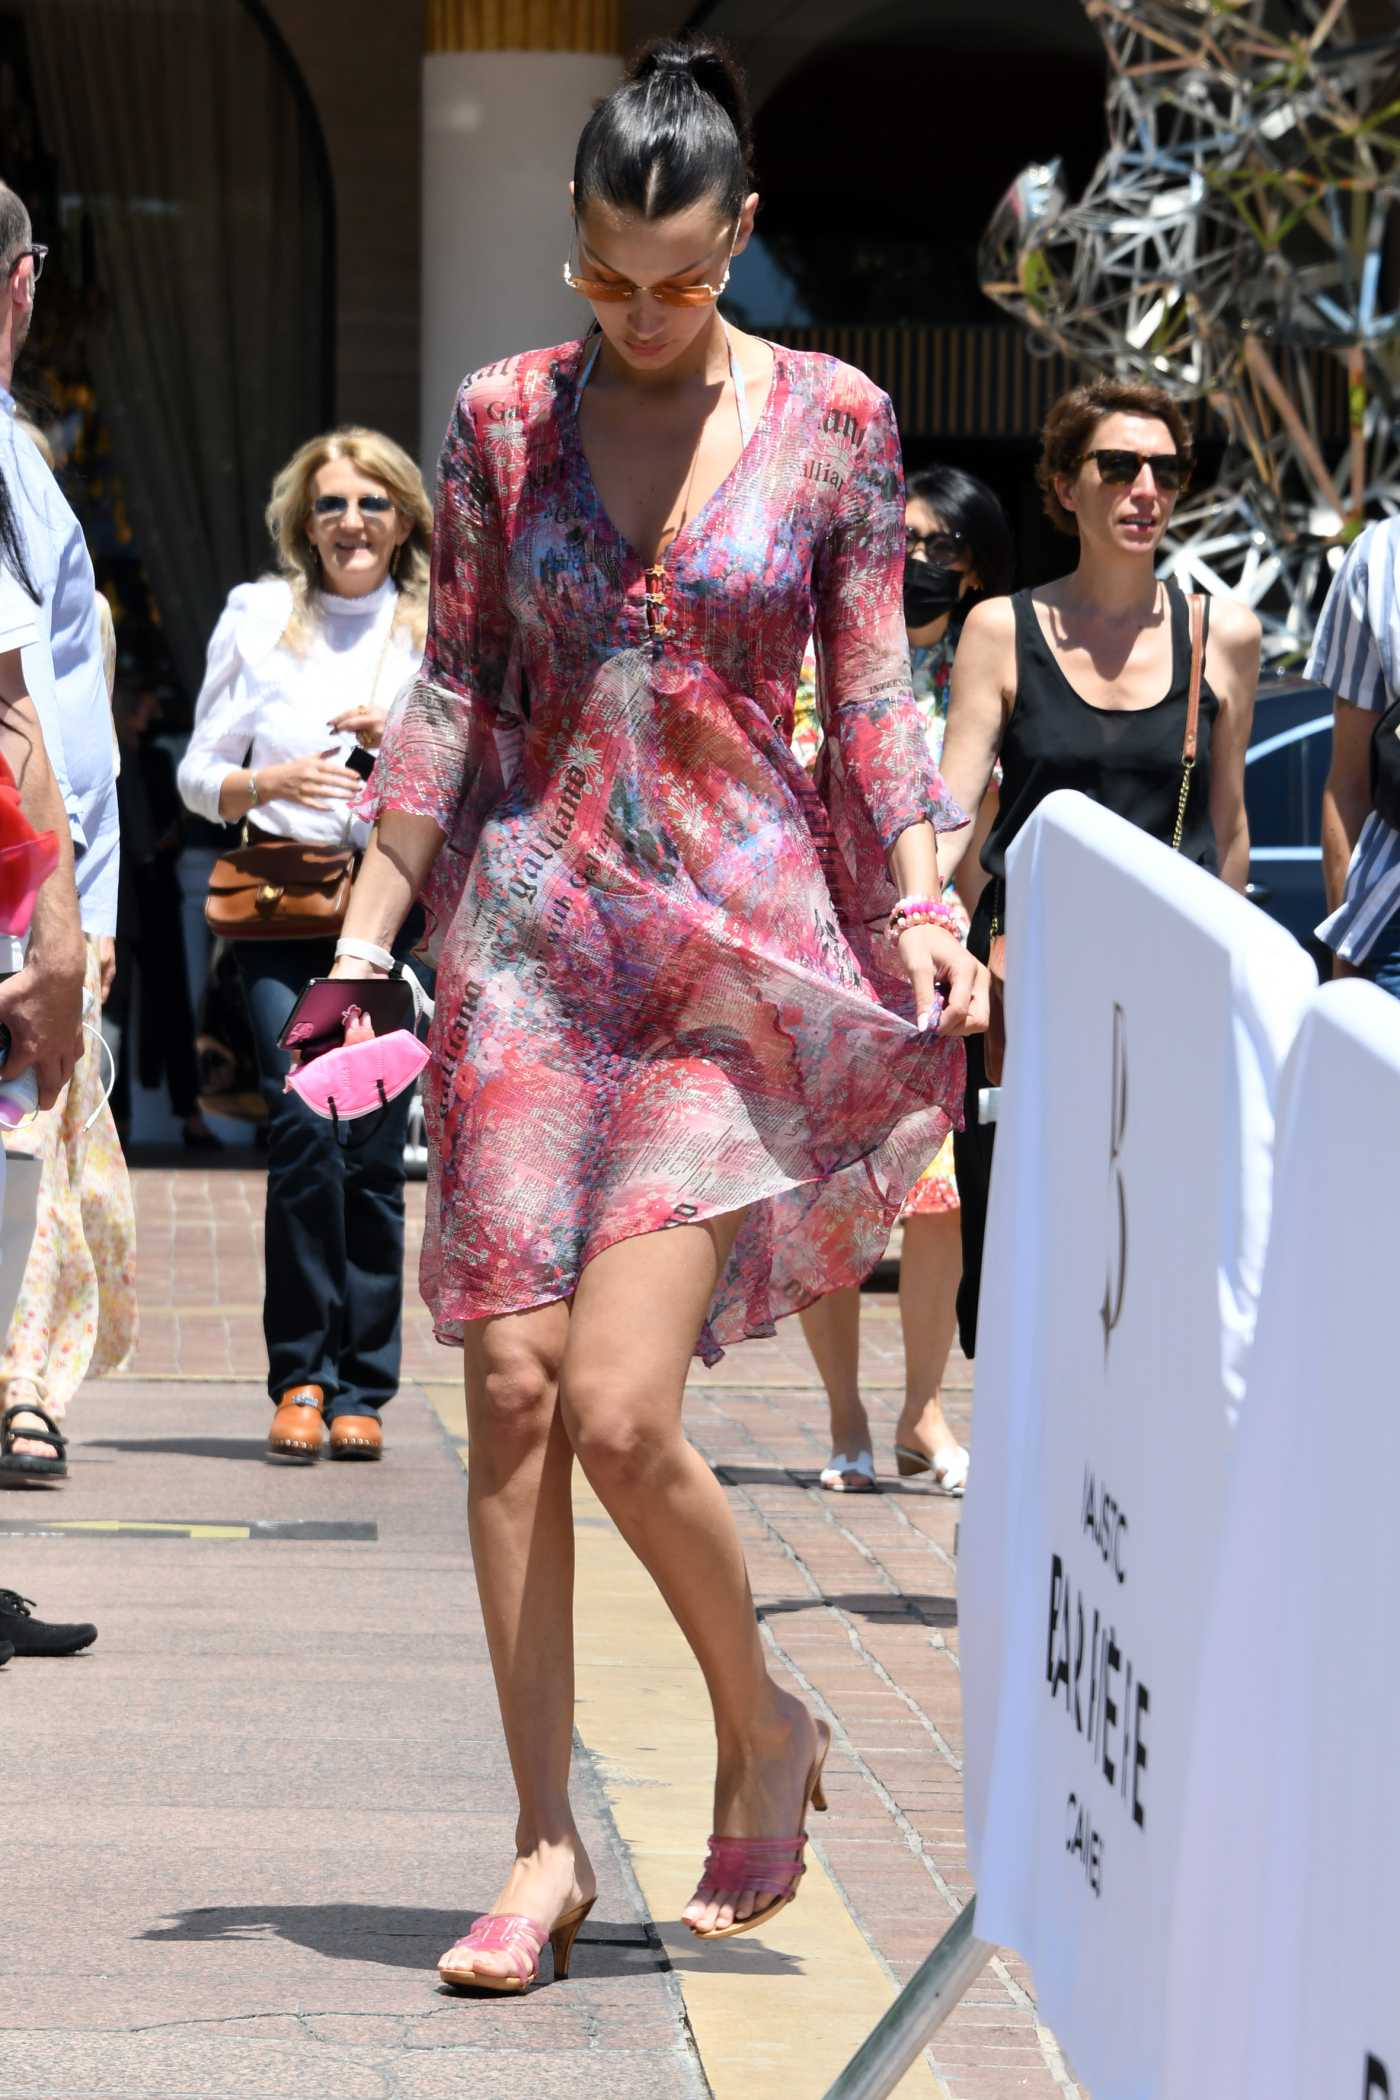 Bella Hadid in a Pink Mini Dress Arrives at Hotel Majestic in Cannes 07/11/2021